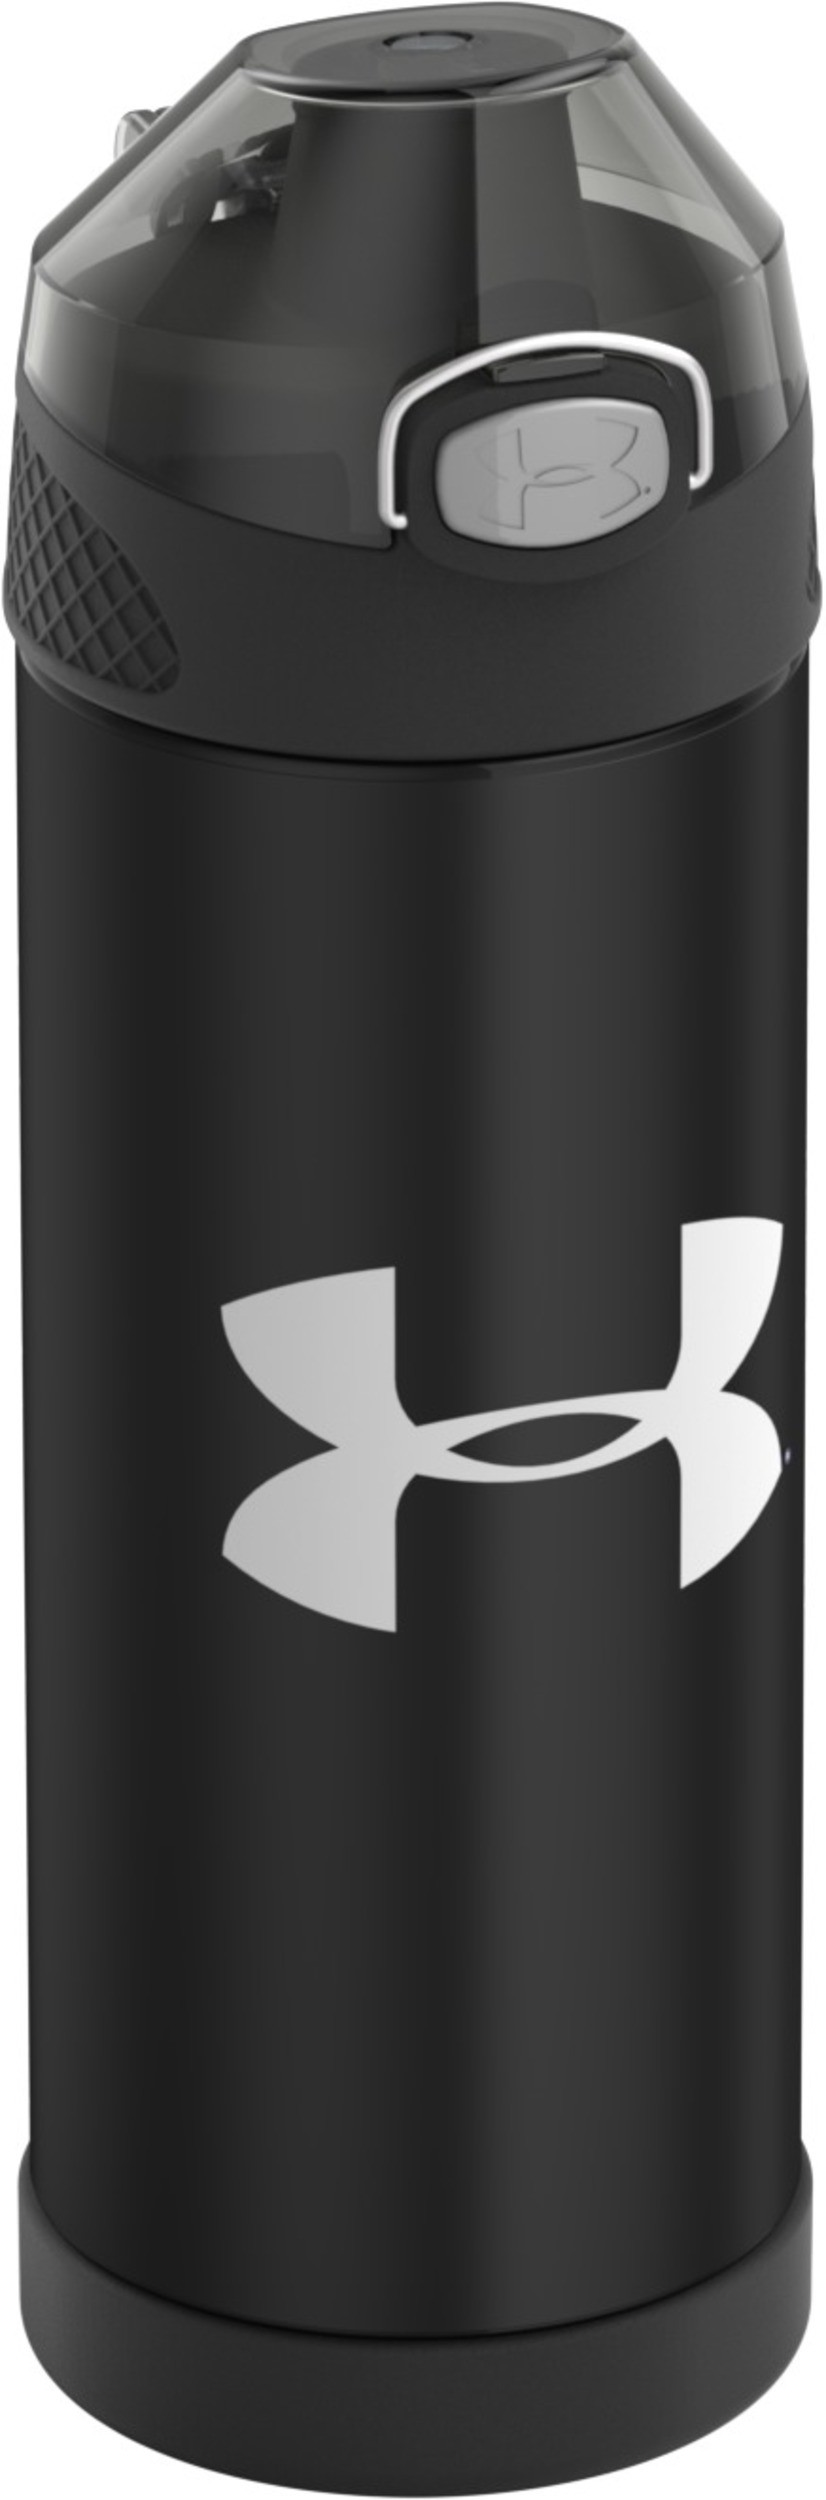 UA PROTEGE 16OZ STAINLESS STEEL WATER BOTTLE BLACK